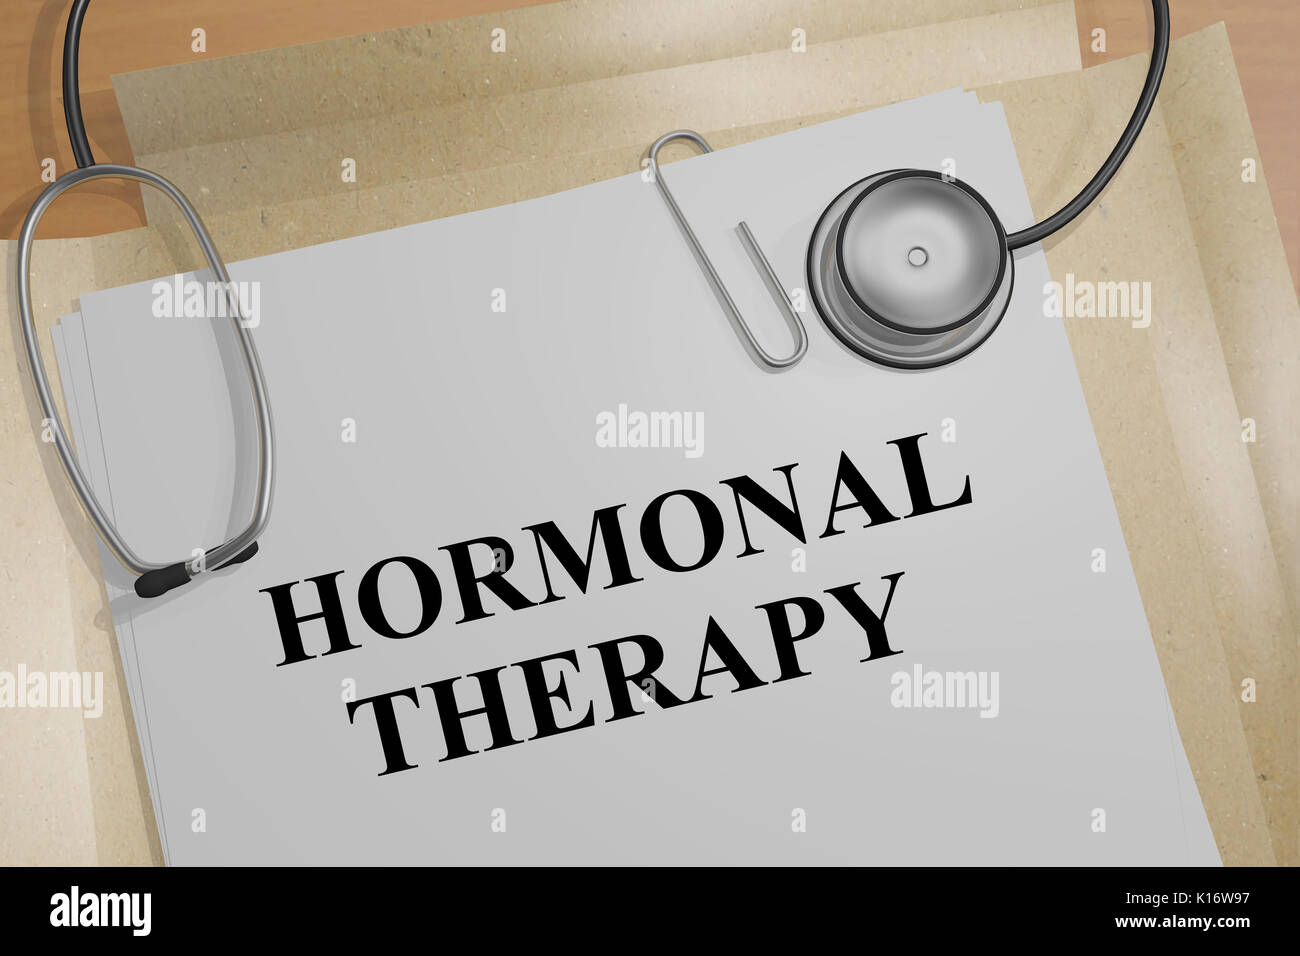 3D illustration of 'HORMONAL THERAPY' title on a medical document - Stock Image